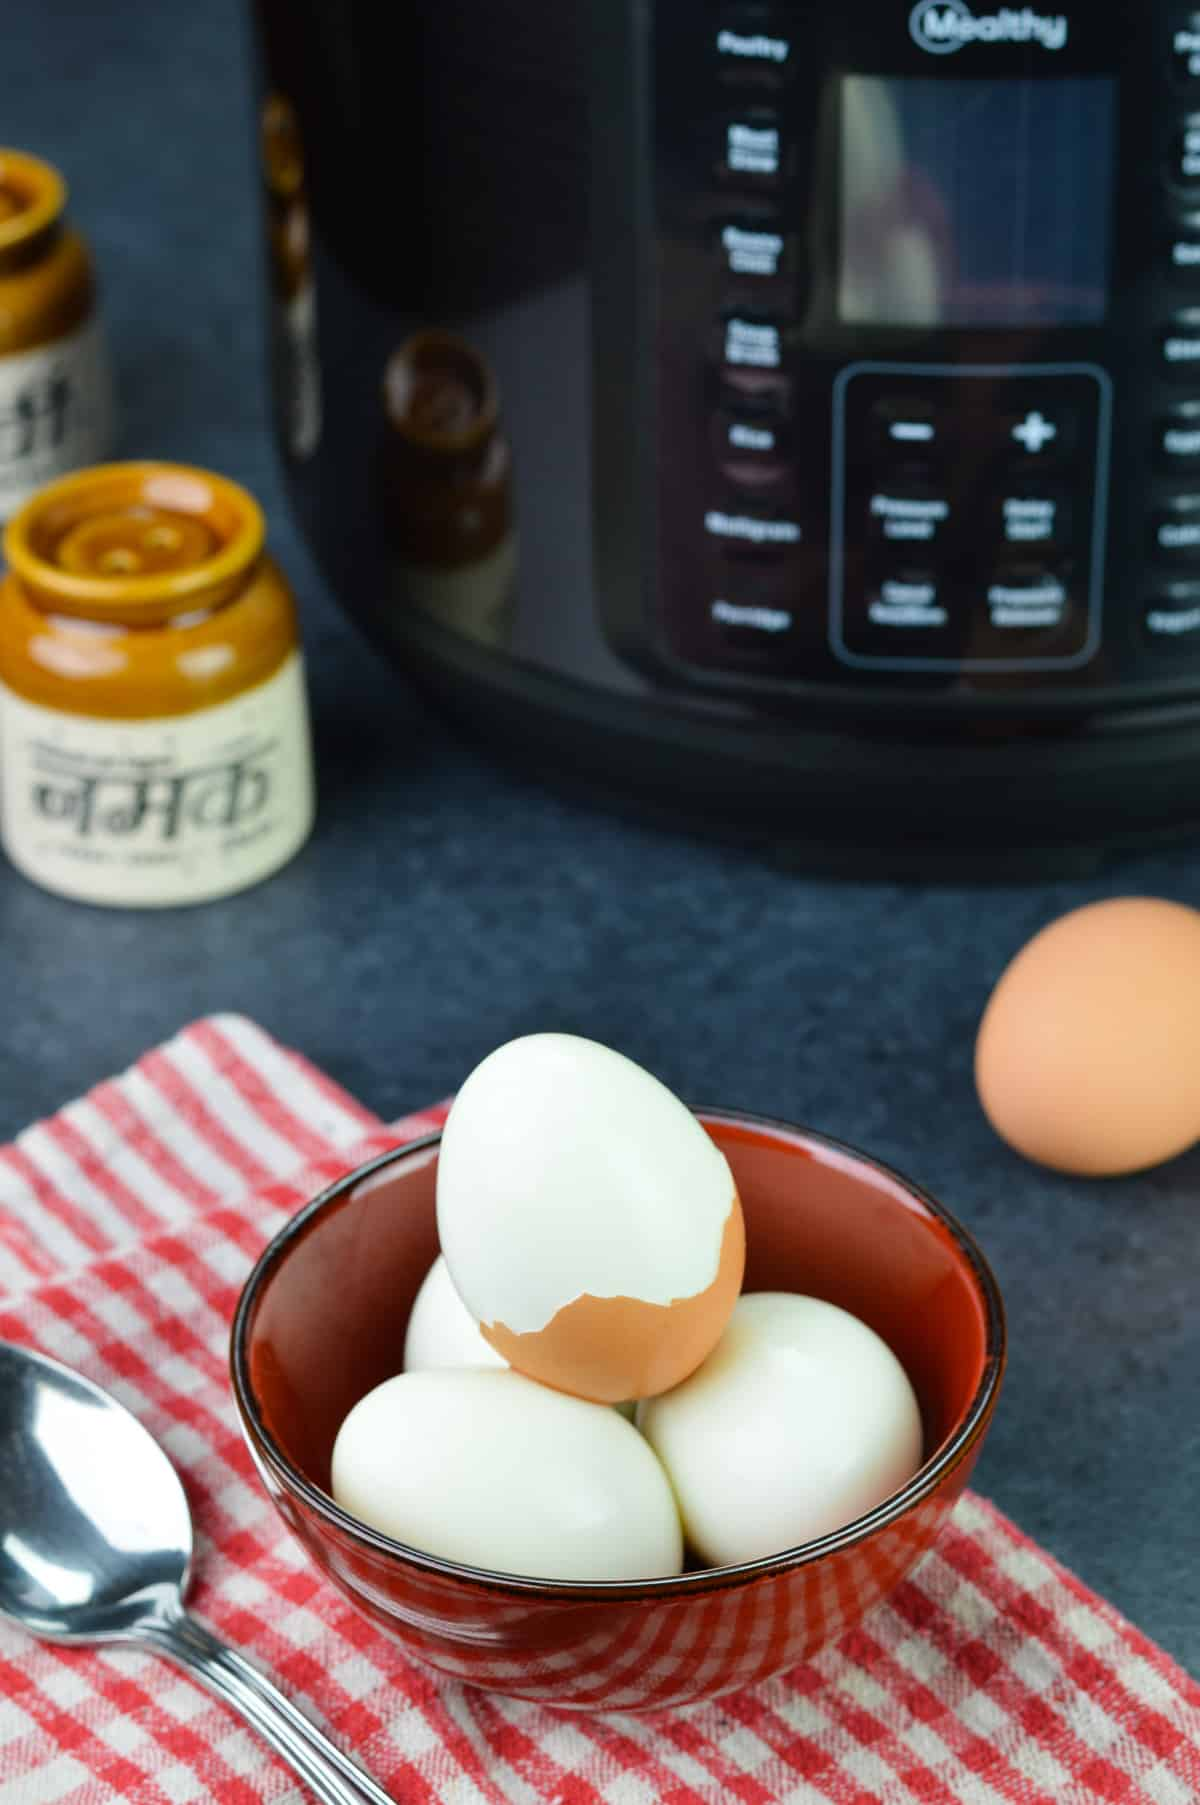 a bowl of hard boiled eggs, with one egg half peeled, along with mealthy multipot 2.0, an unpeeled egg, and salt & pepper shakers in the background